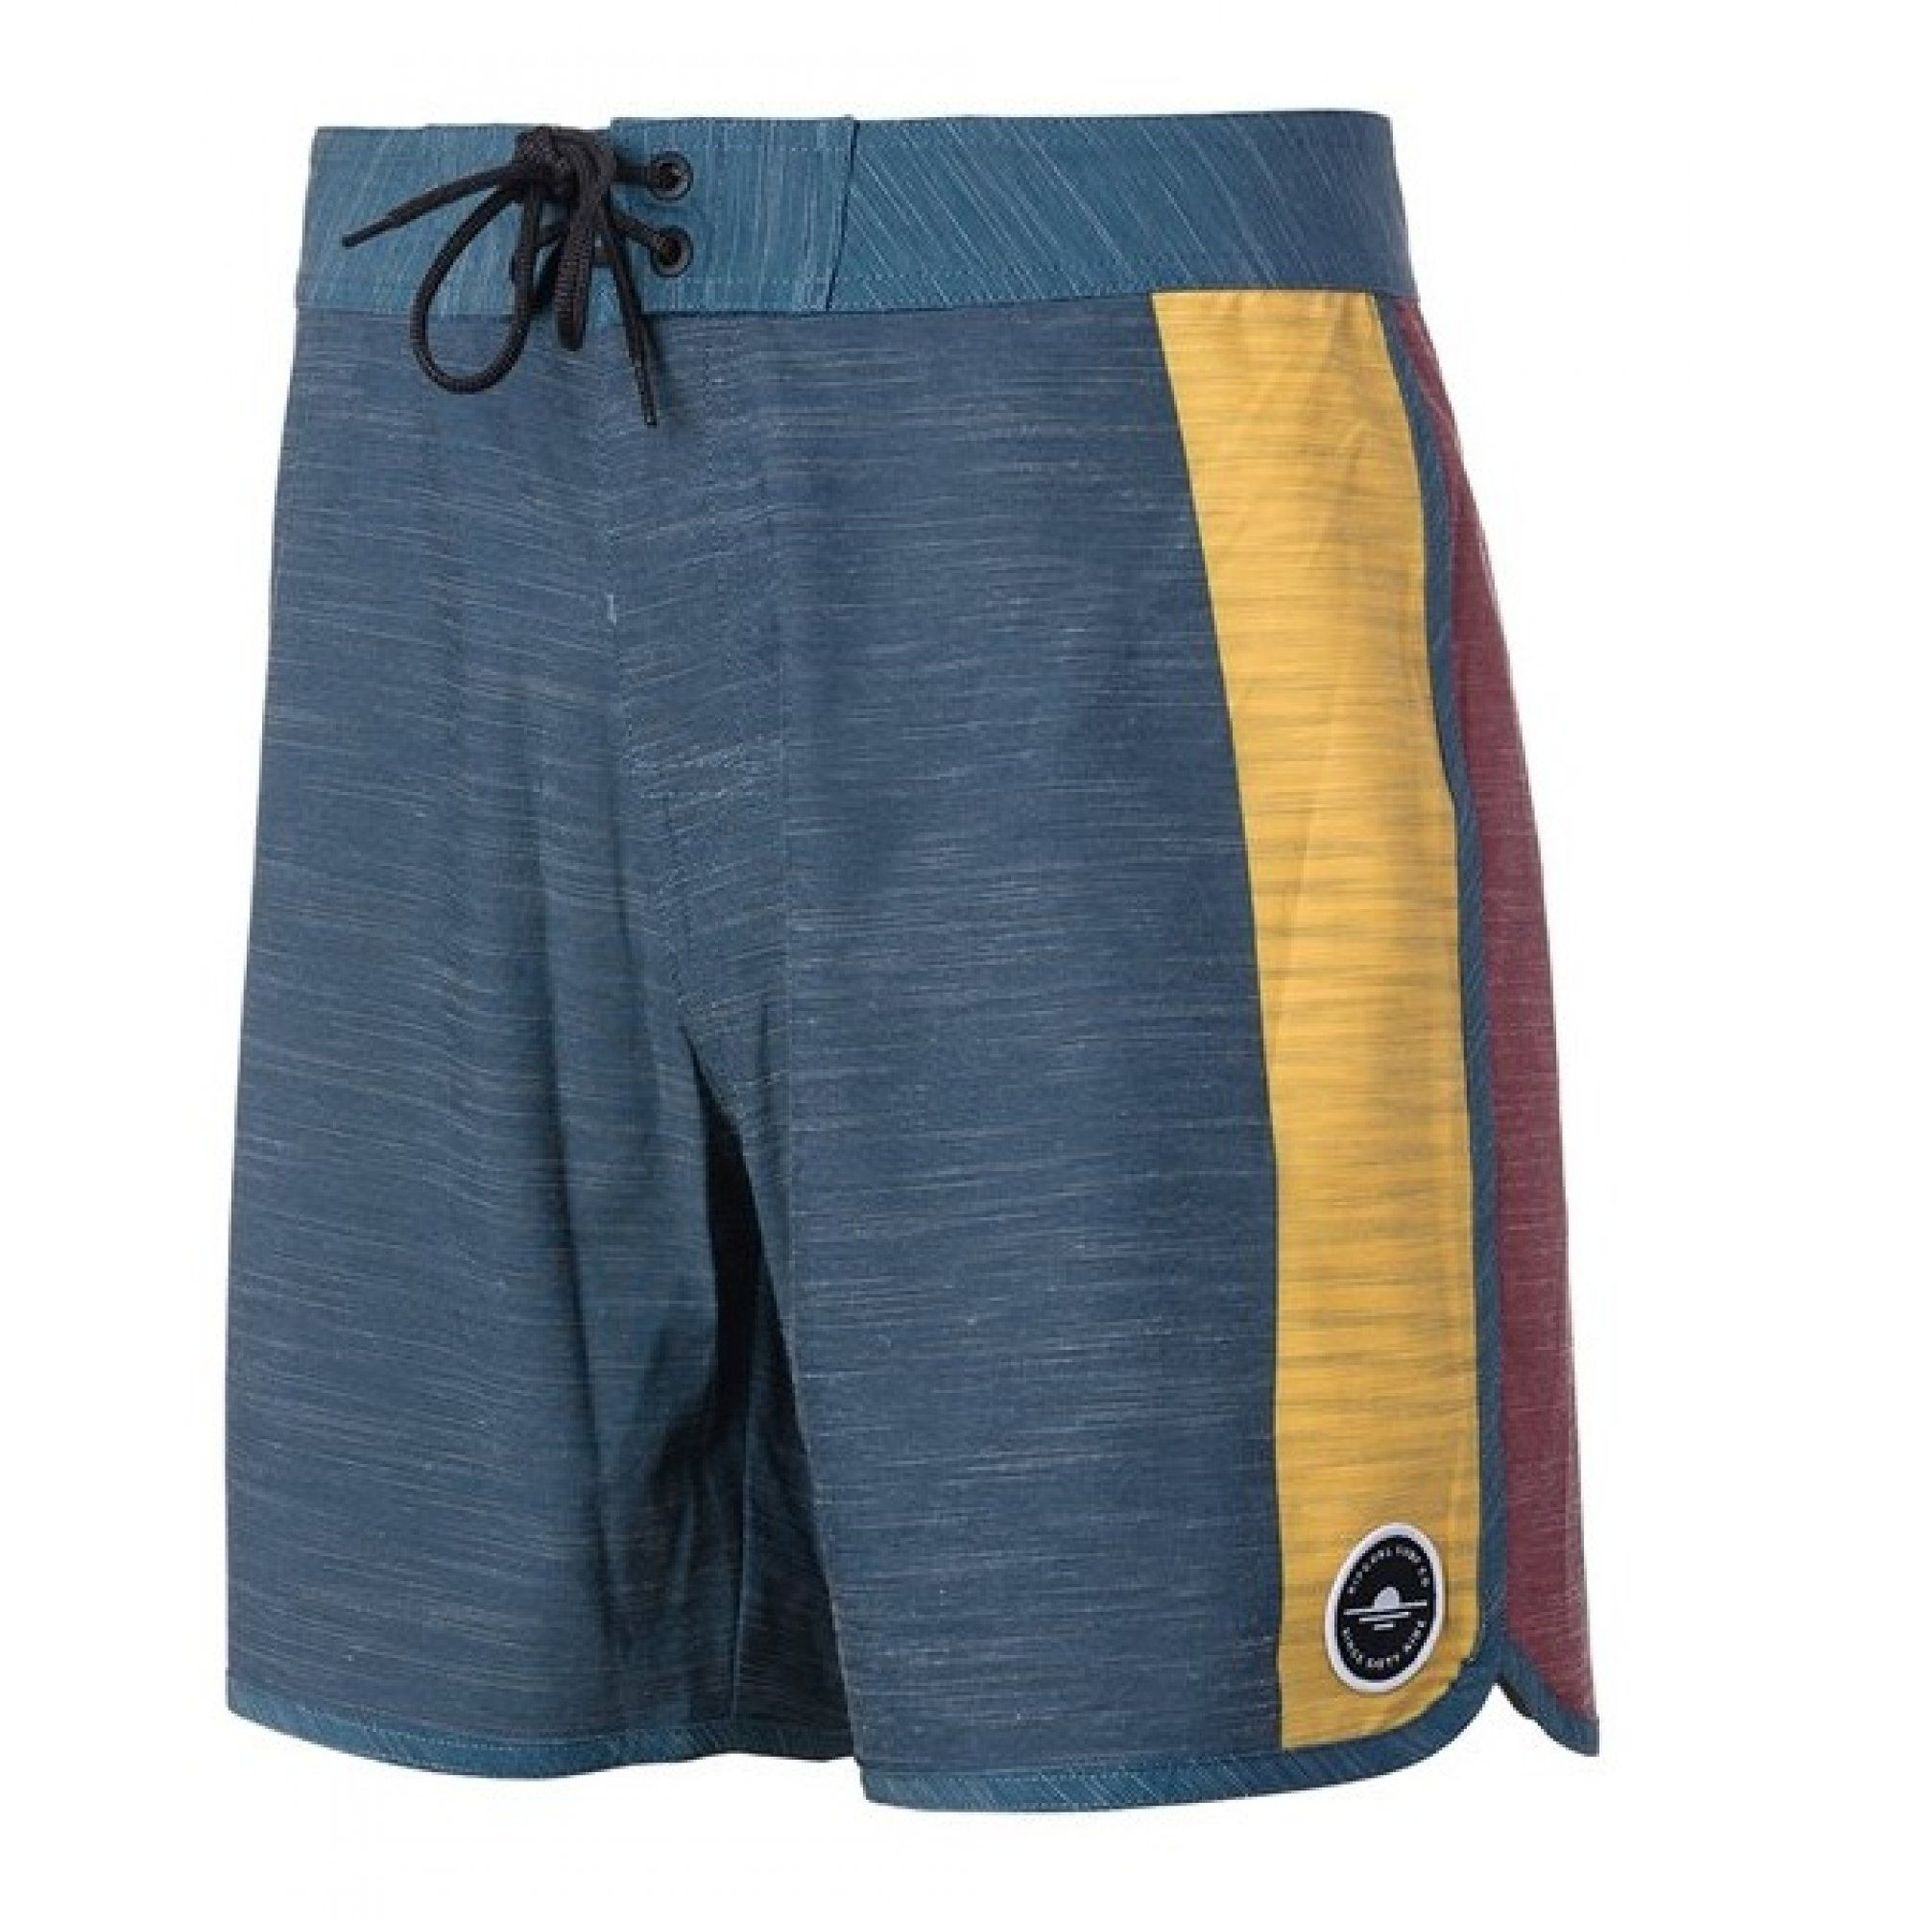 BOARDSHORTY RIP CURL RETRO SUMMERIZED 17 NAVY